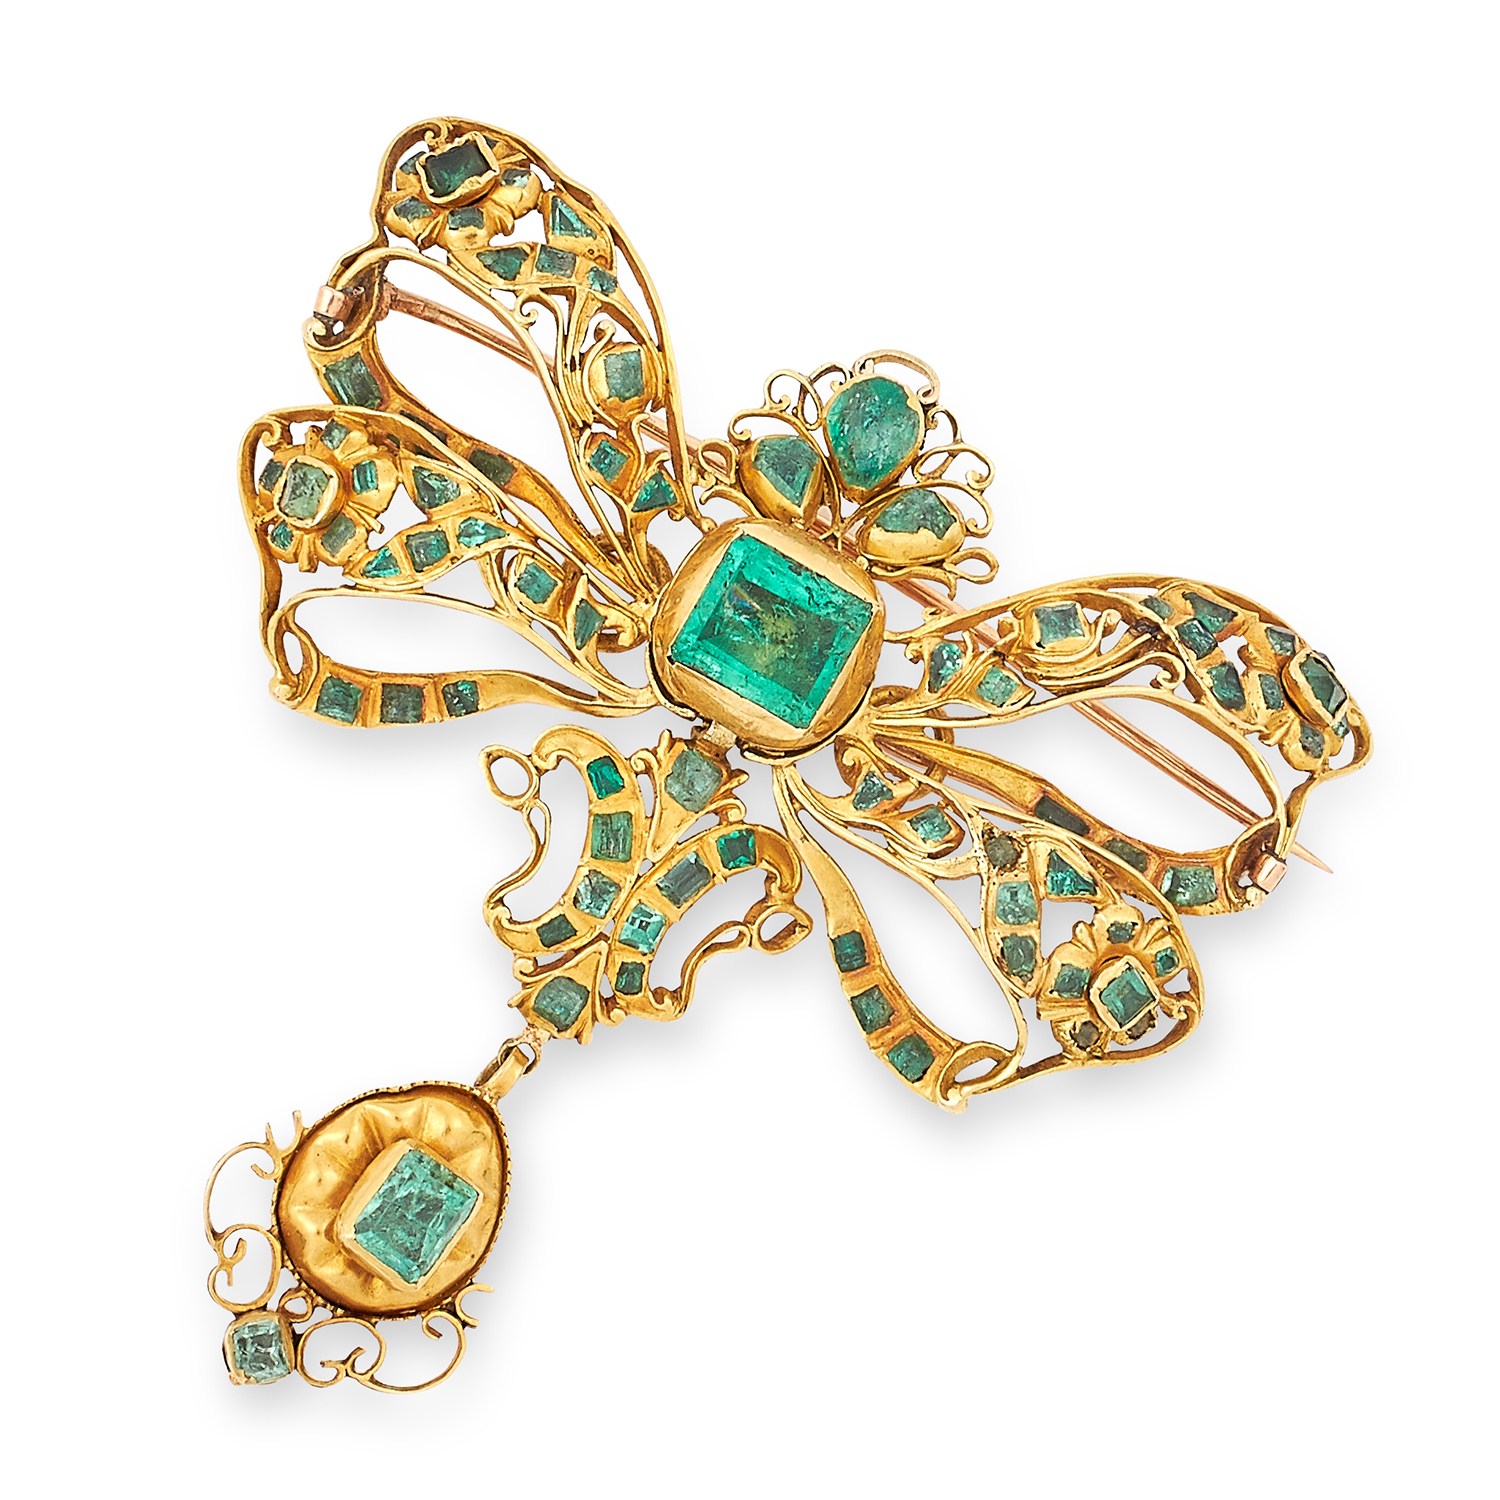 Los 13 - ANTIQUE EMERALD BOW BROOCH, SPANISH 19TH CENTURY set with pear, square and cushion cut emeralds, 6.